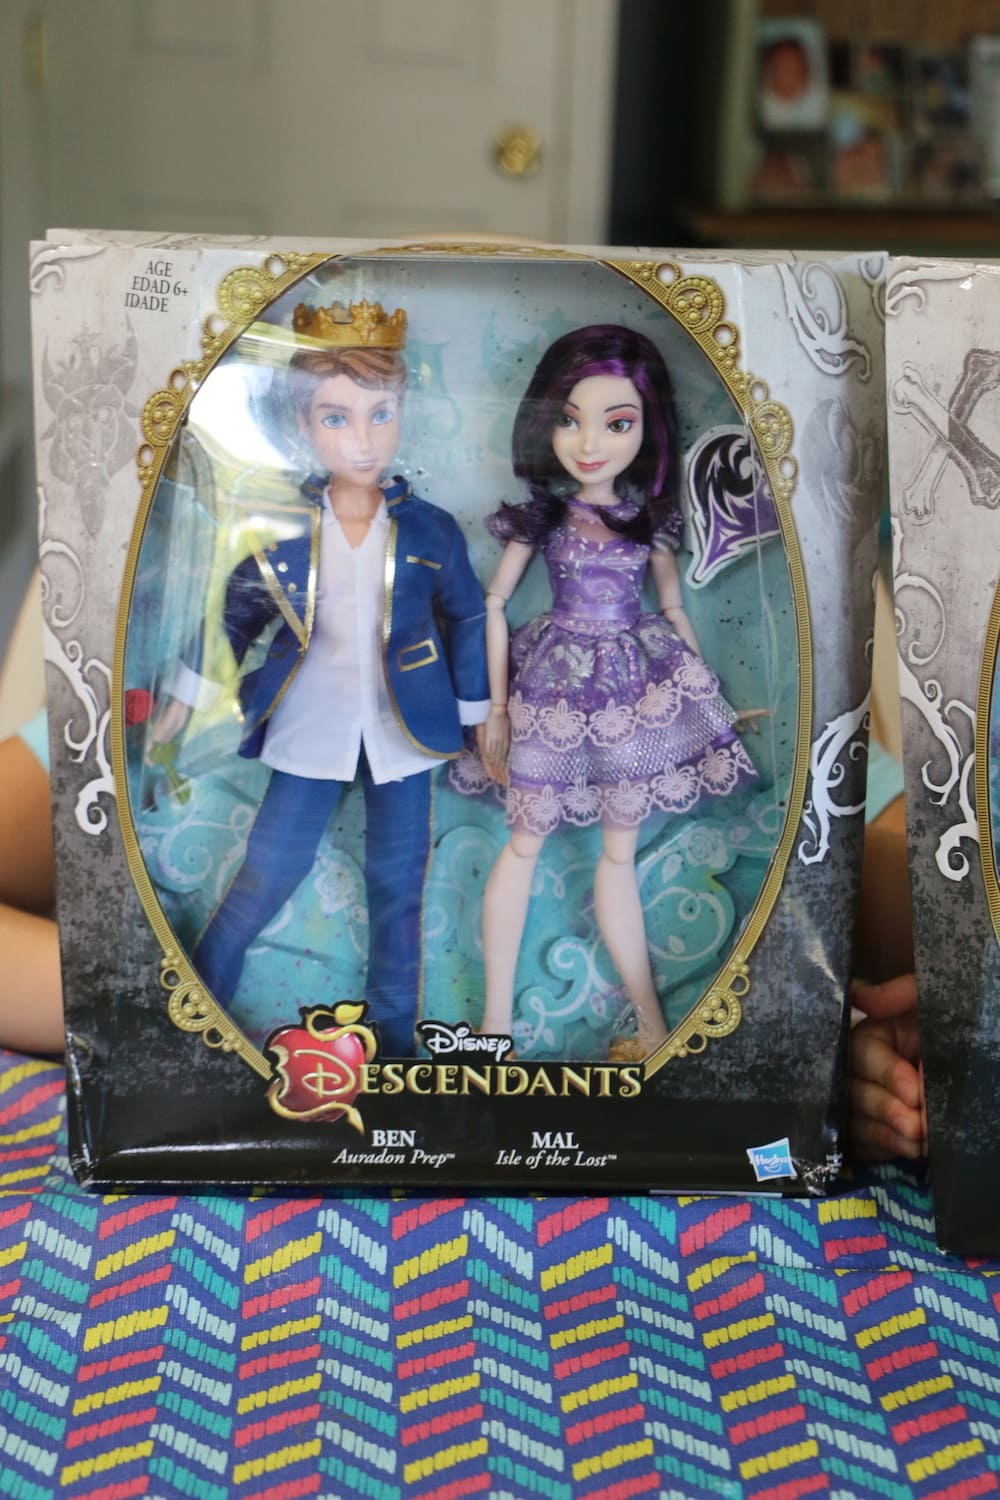 girls playing with Descendants 2 dolls